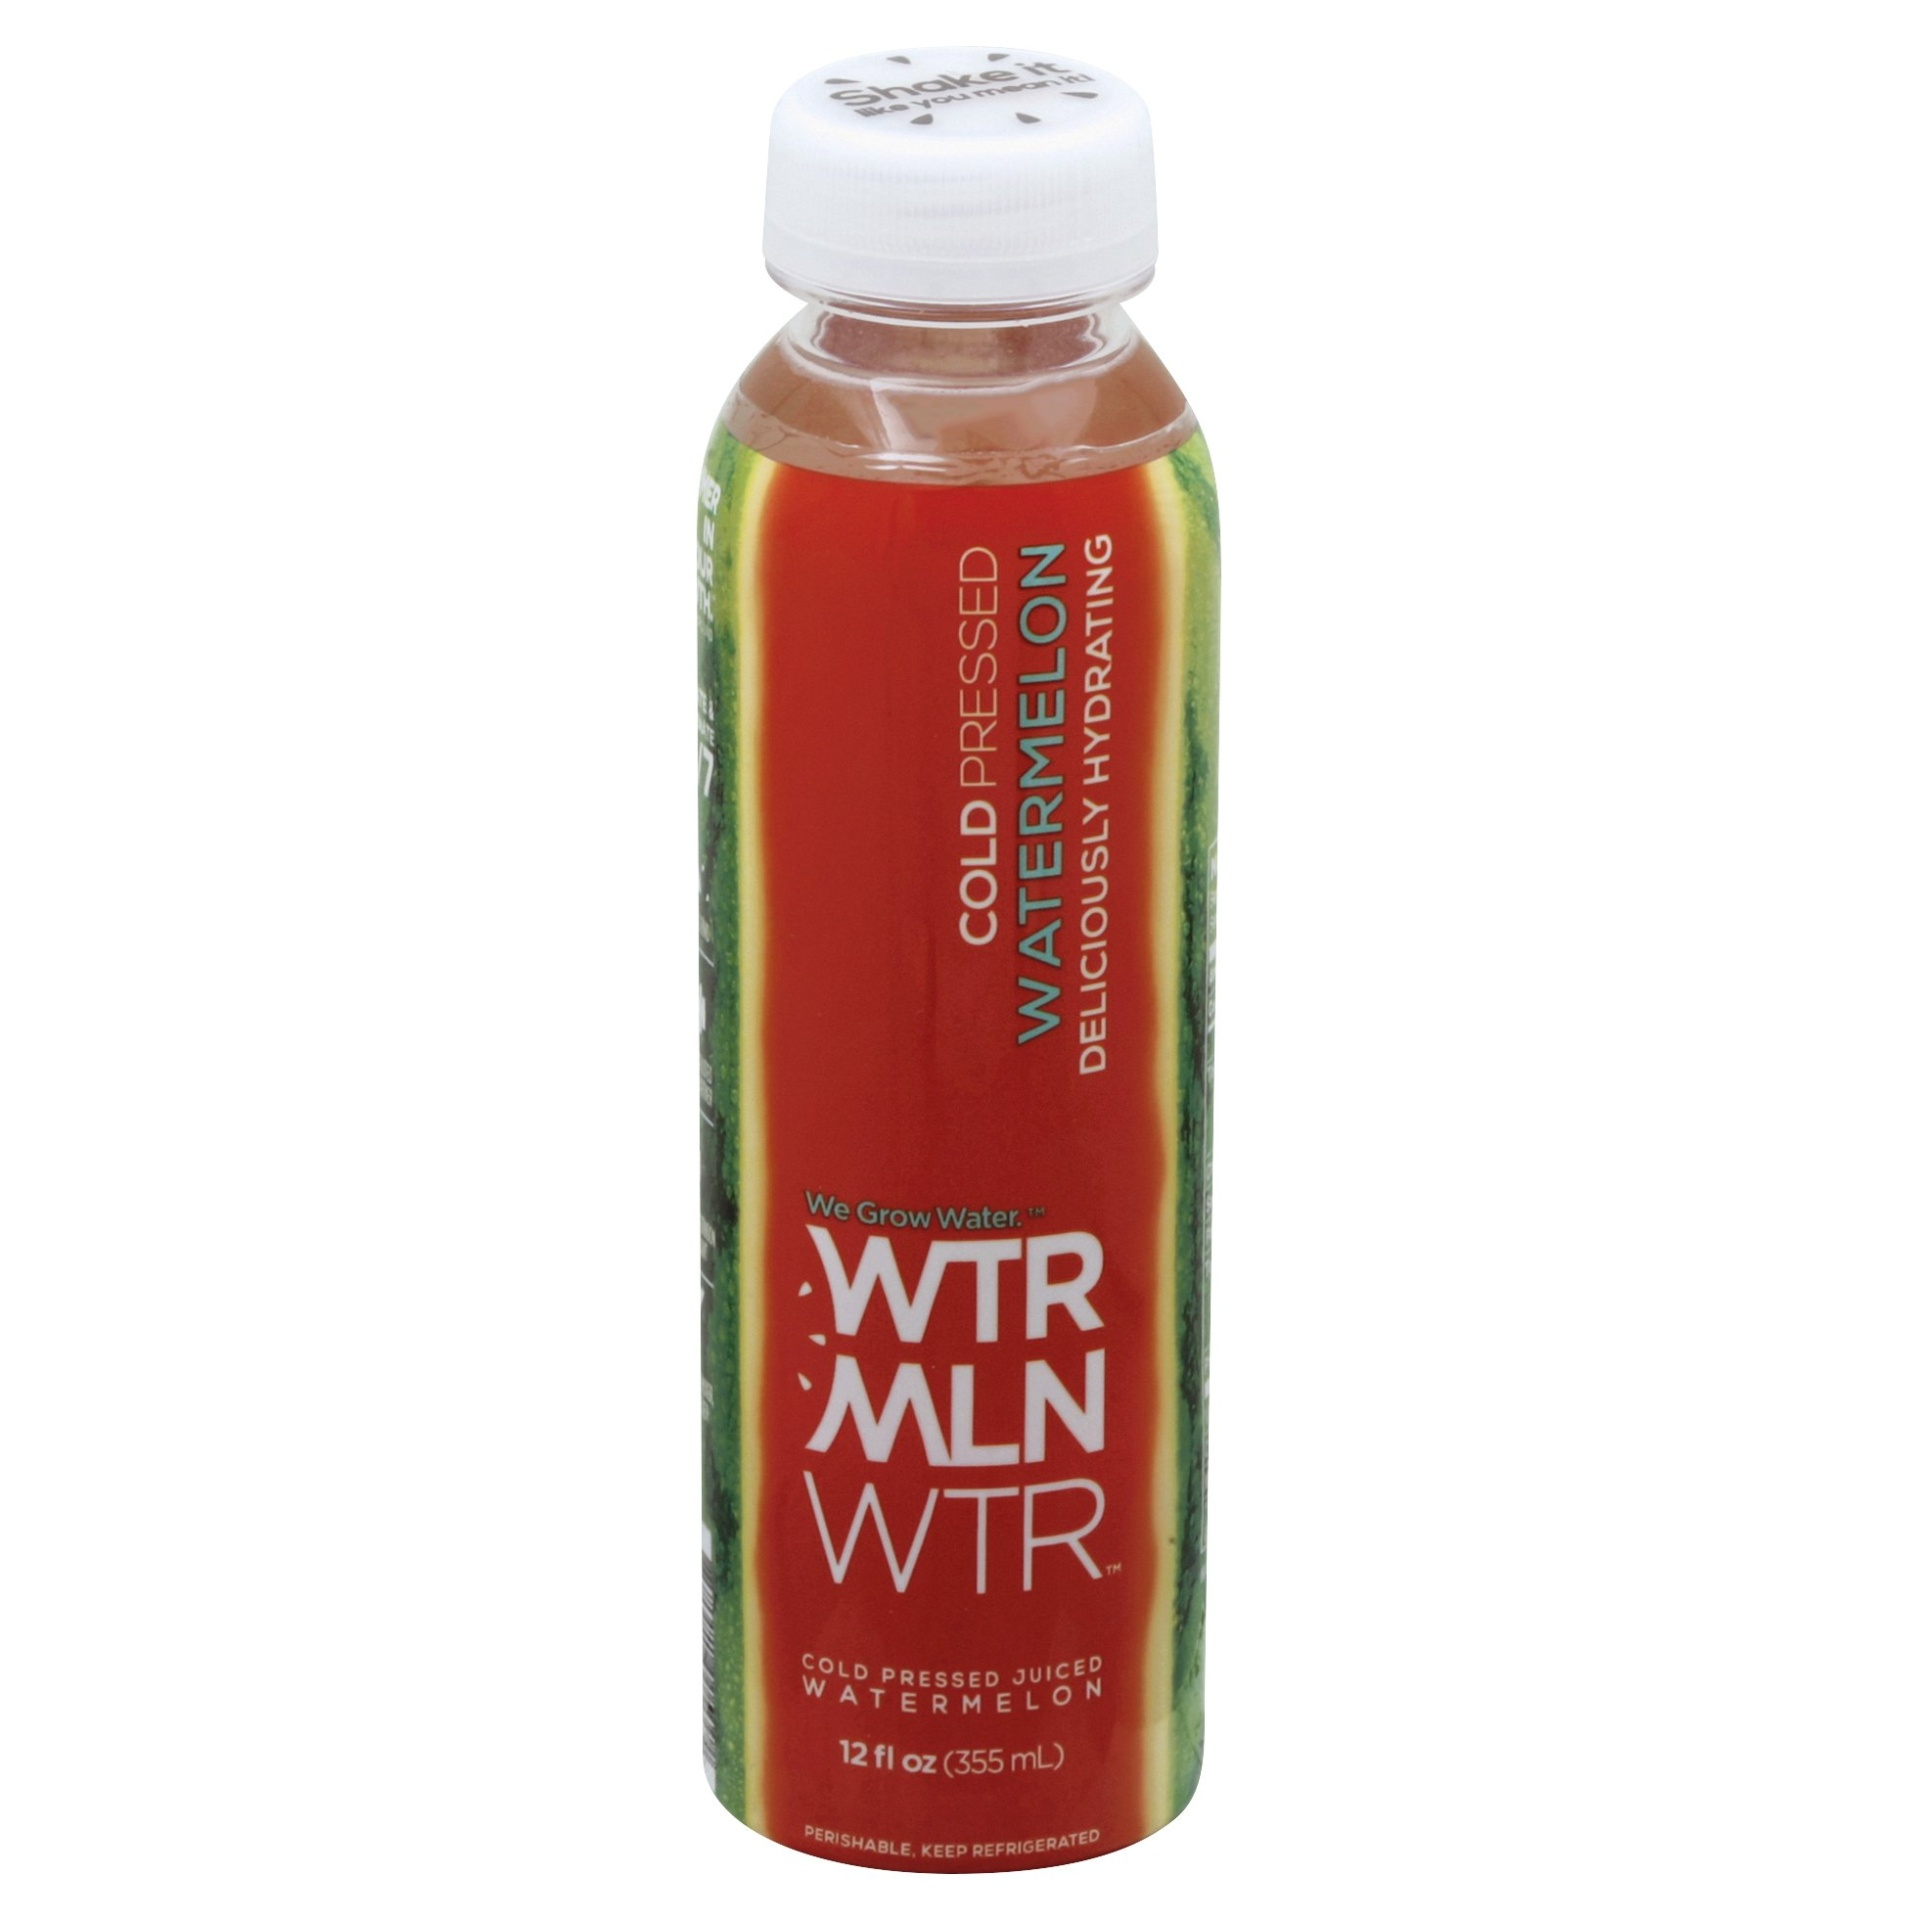 slide 1 of 4, WTRMLN WTR Watermelon Cold Pressed Juice,